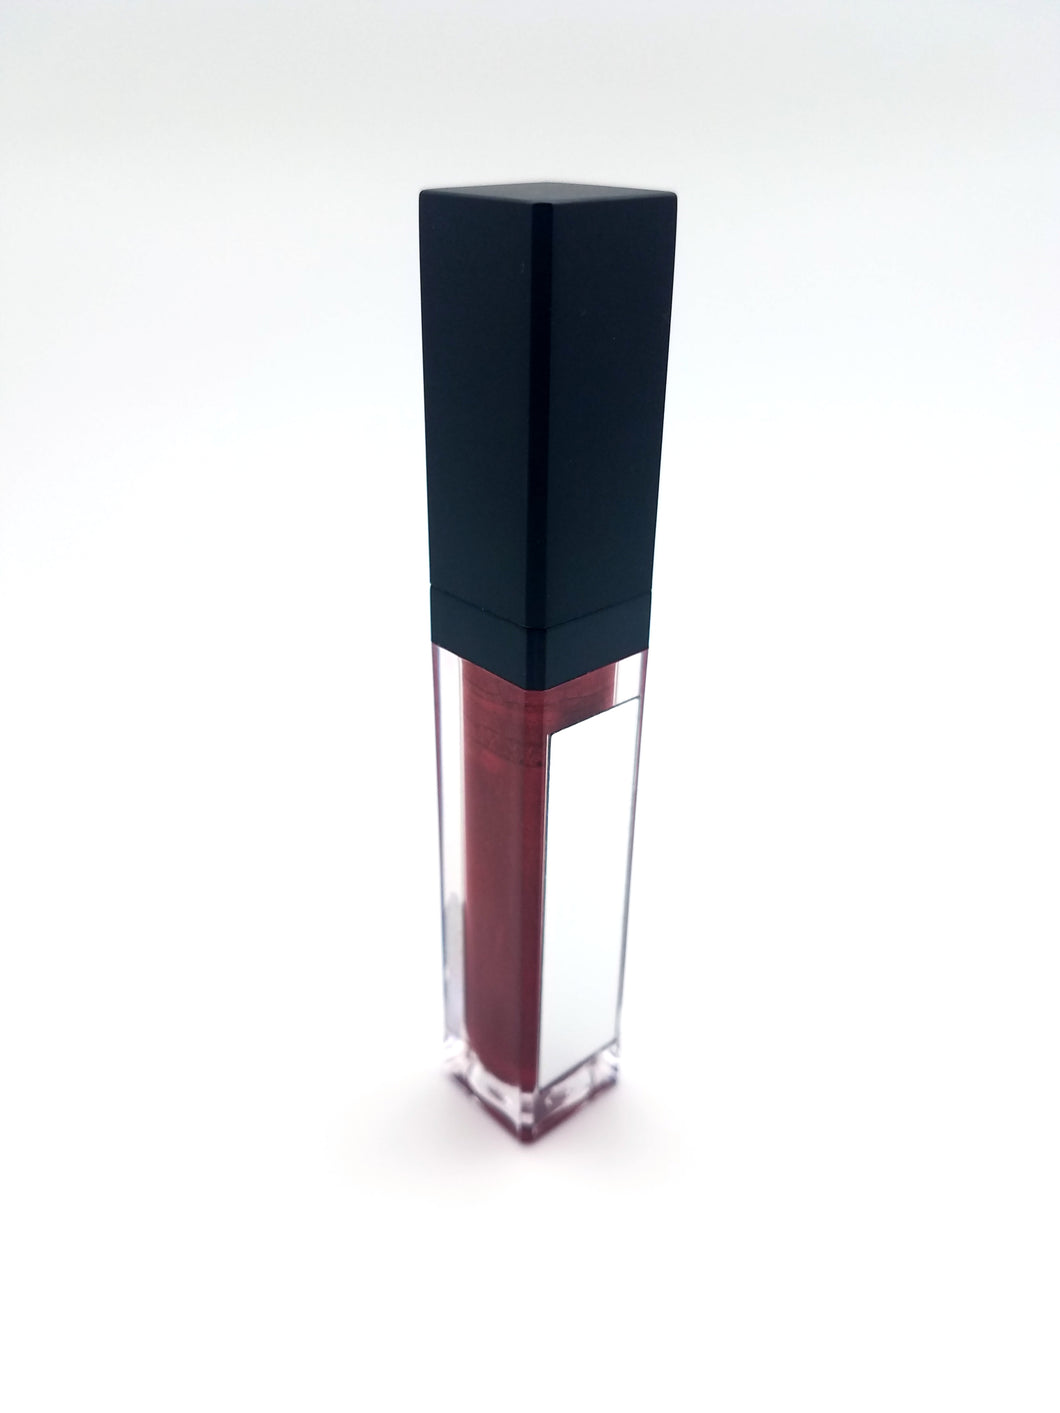 Shift- All Natural Lip Gloss,Ravishing Deep Red Color with Hints of Shimmer and Lots of Shine.